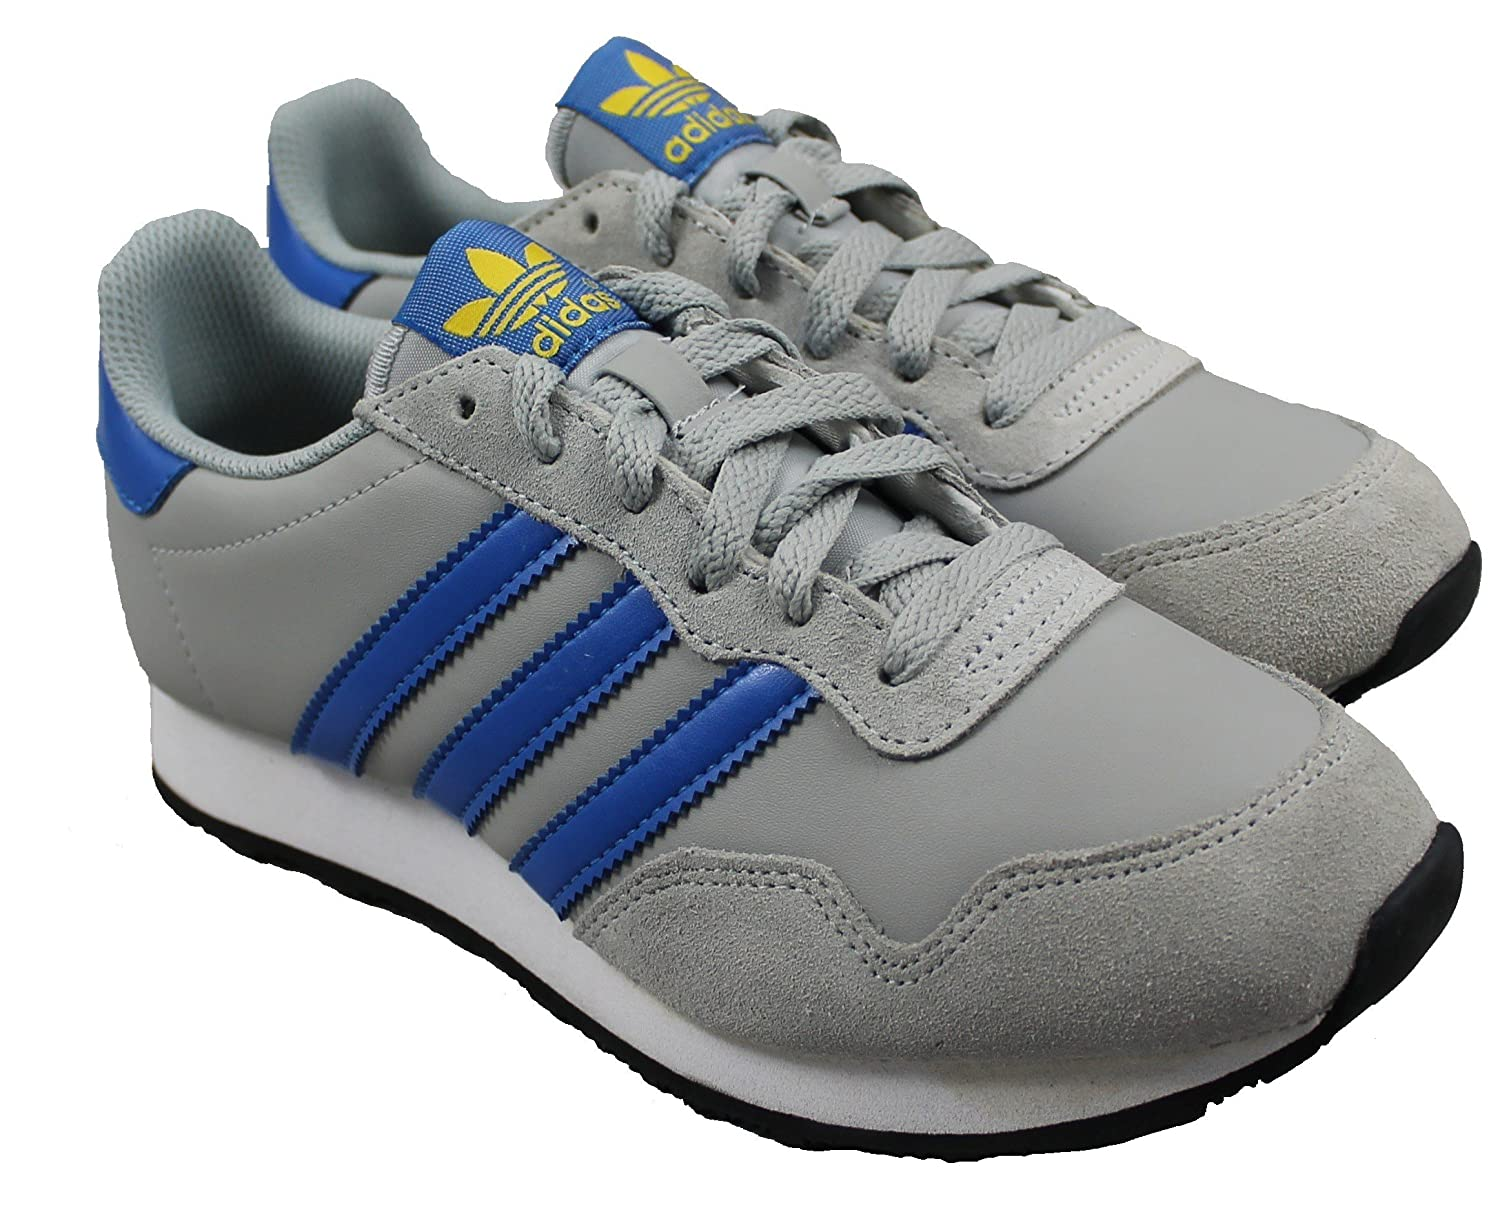 adidas Ocis Runner d65671, Baskets Mode Homme Grey Size: 9 UK:  Amazon.co.uk: Shoes & Bags